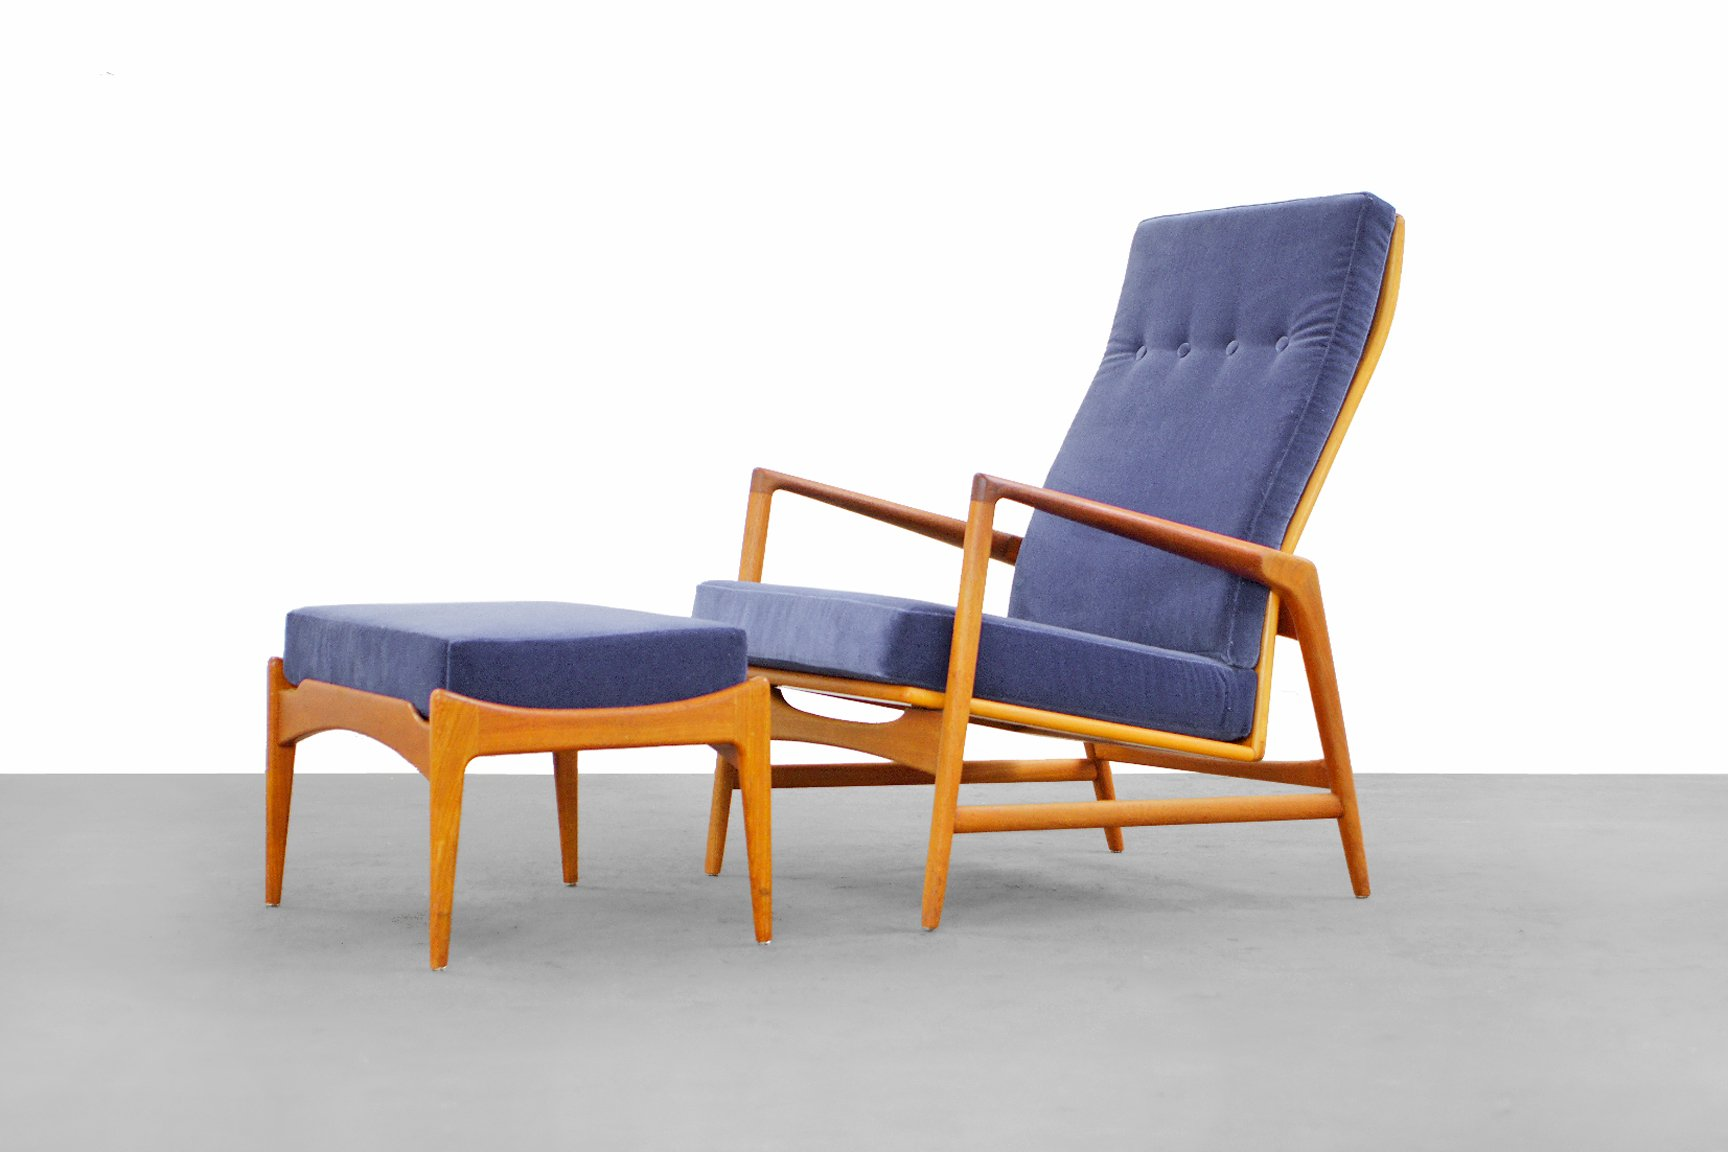 Modern Lounge Chairs Danish Modern Lounge Chair And Ottoman By Ib Kofod Larsen